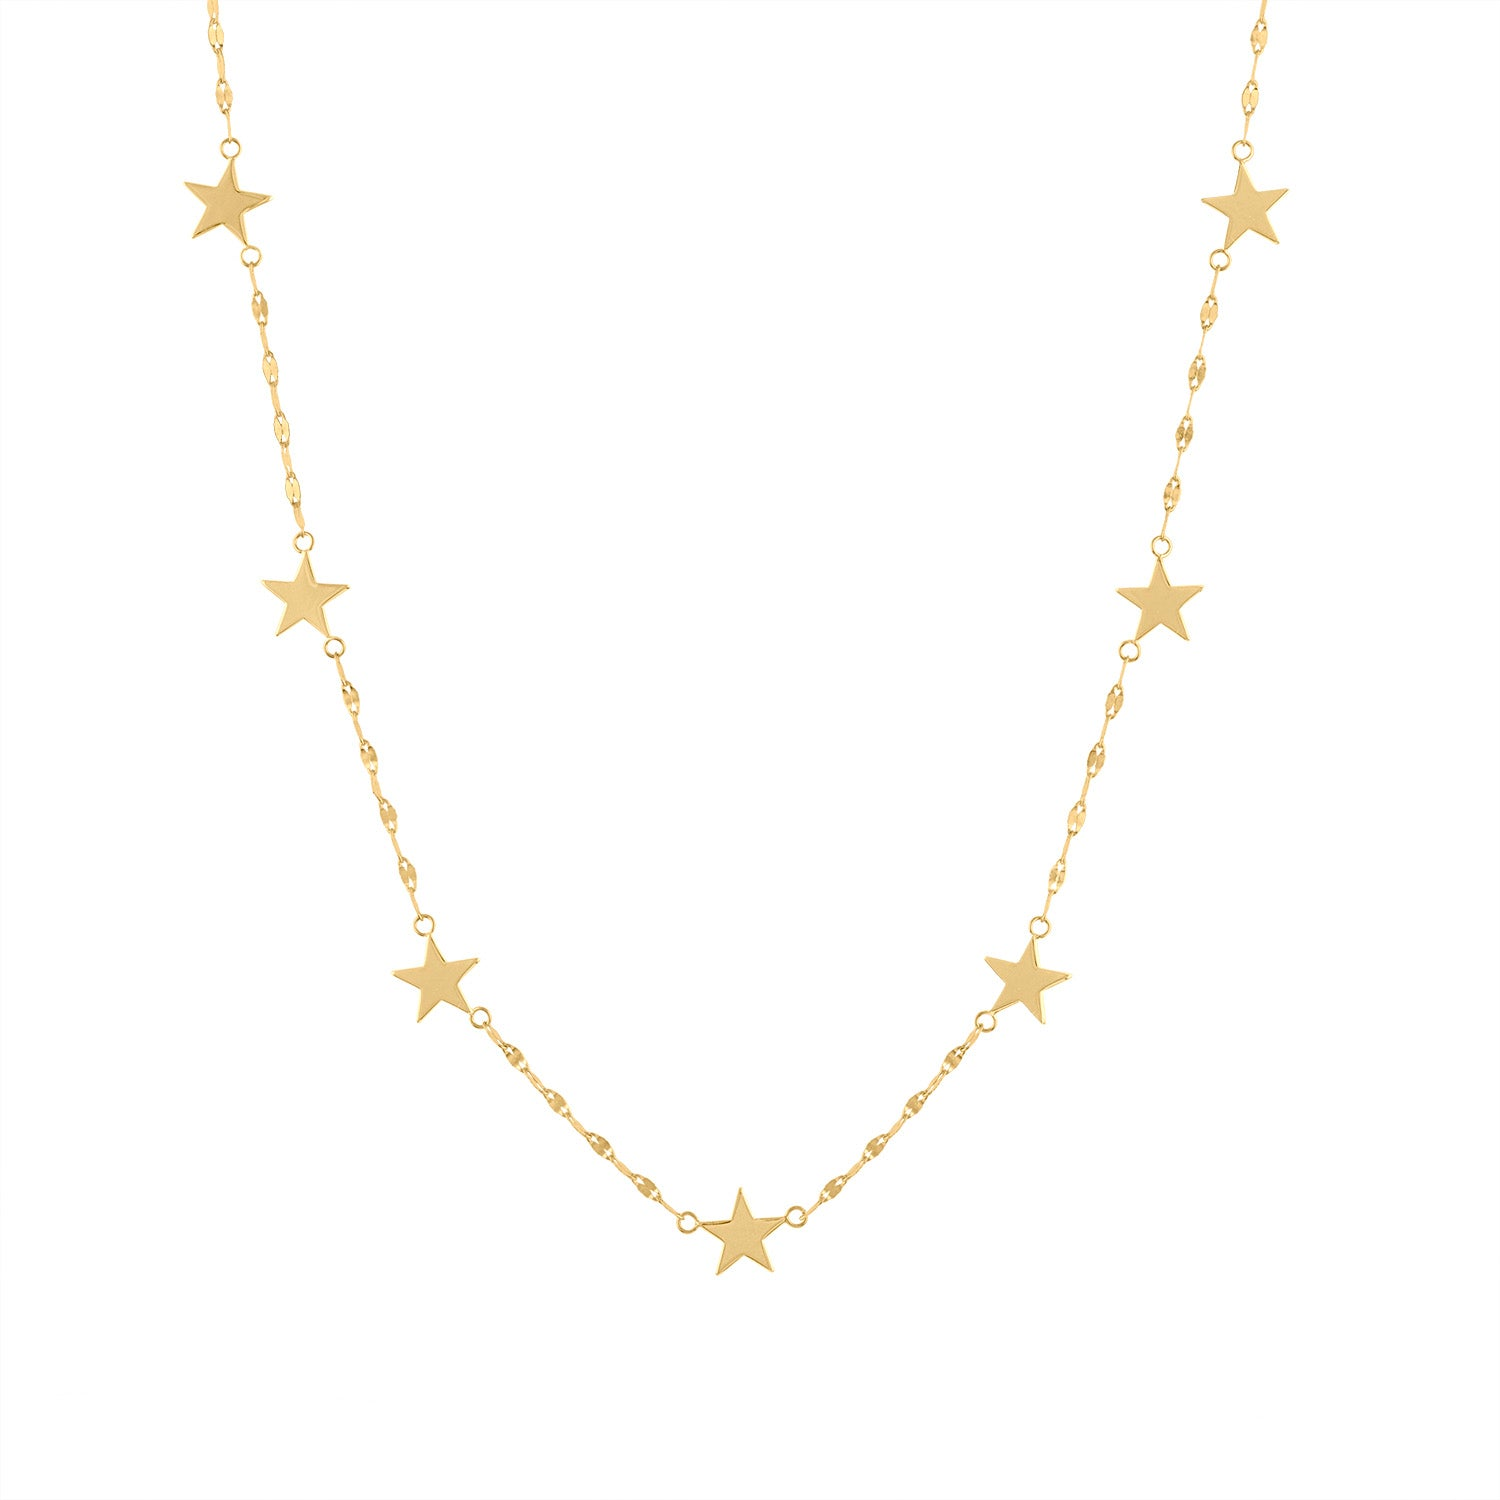 14KT GOLD PLAIN GOLD SEVEN STAR DIAMOND CUT NECKLACE